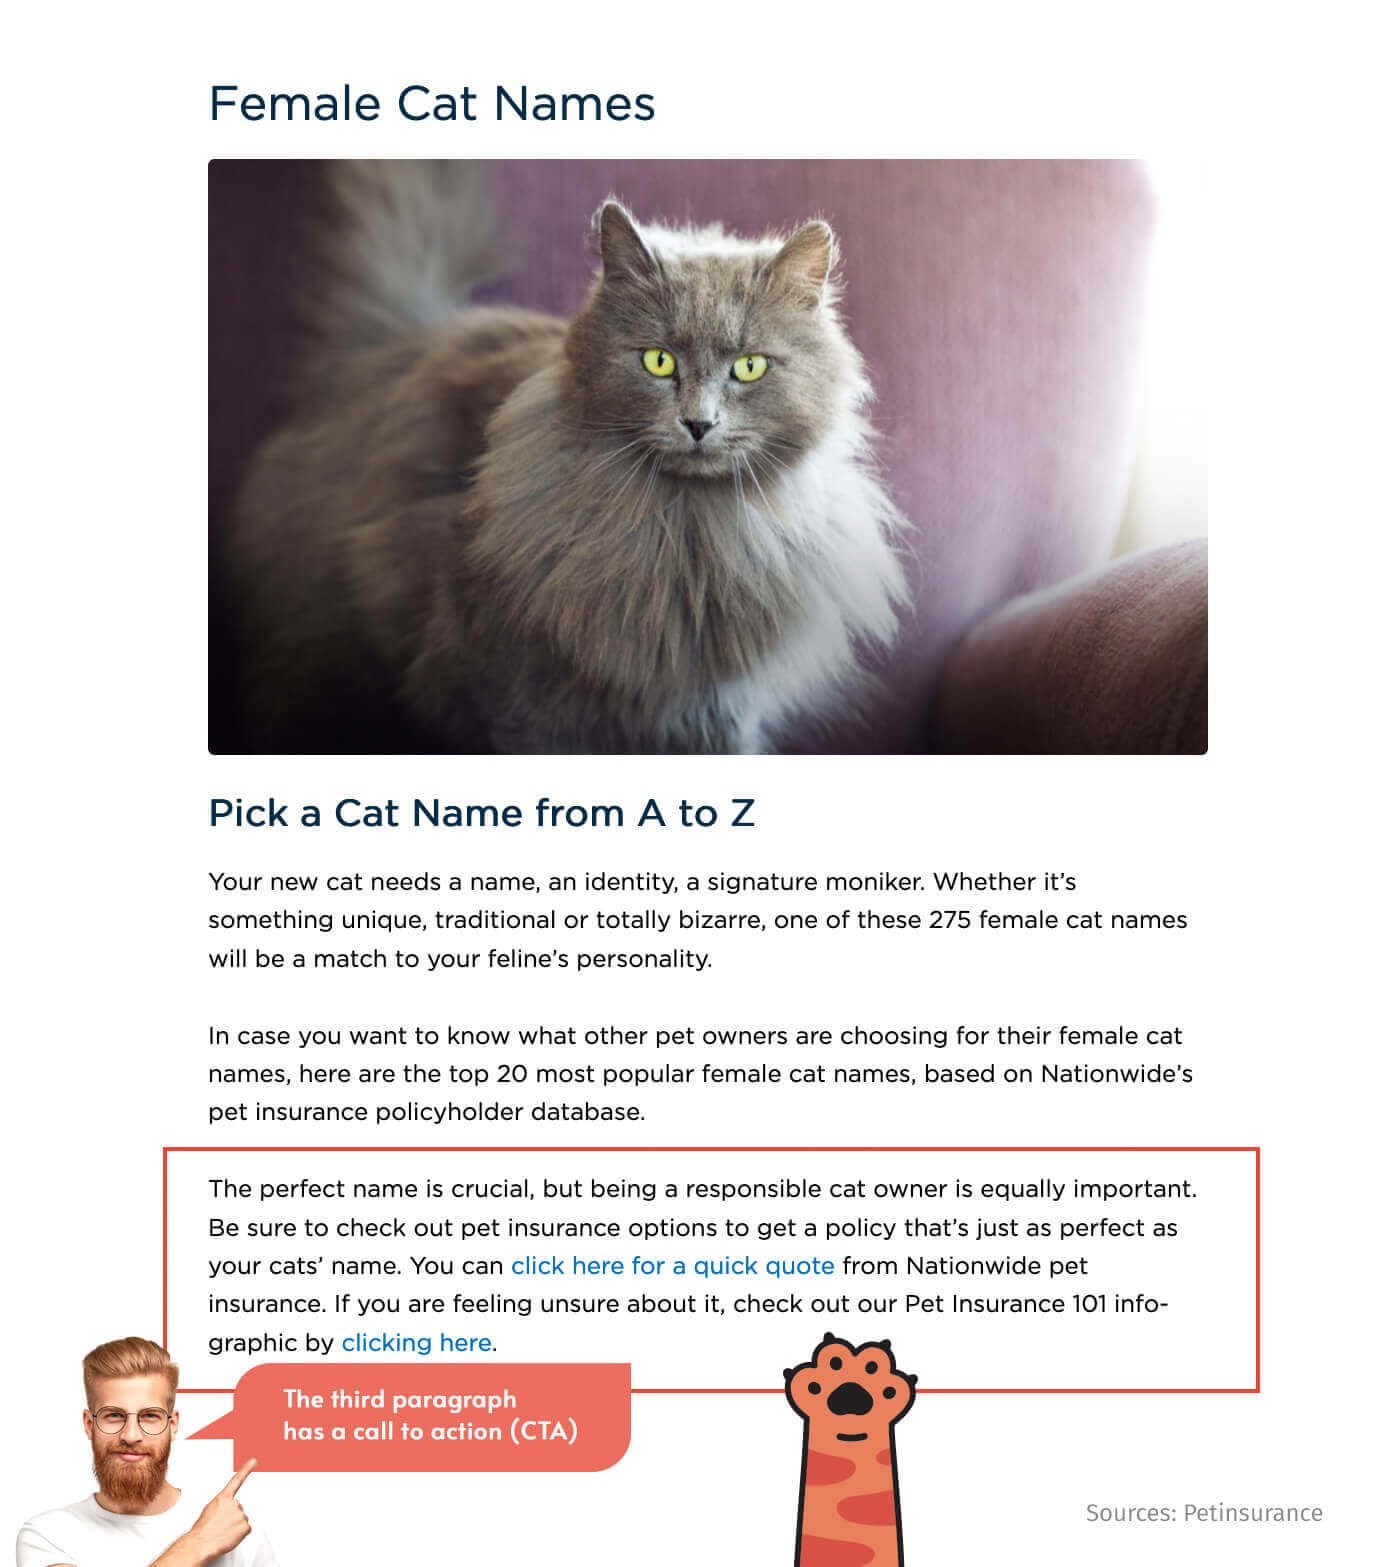 A website that offers pet insurance products attracts new customers with an article about popular female cat names